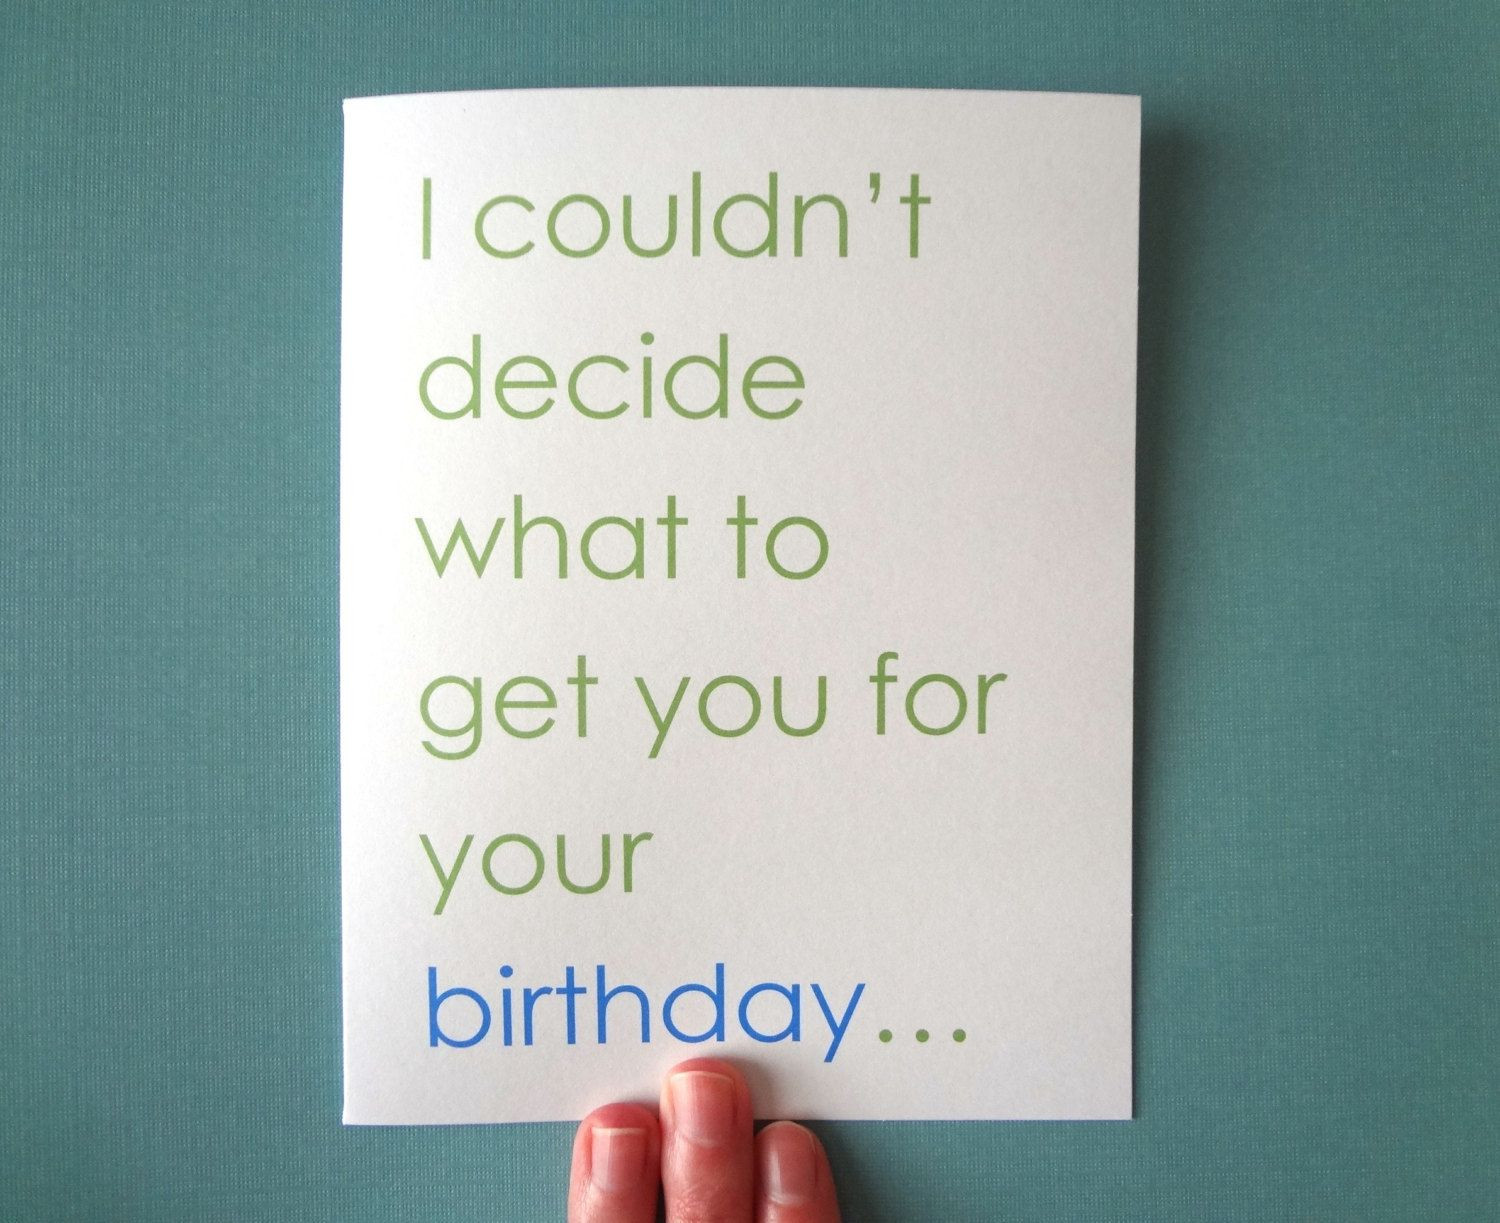 Dirty birthday card for boyfriend birthday card for husband wife dirty birthday card for boyfriend birthday card for husband wife girlfriend birthday get you naked card kristyandbryce Images